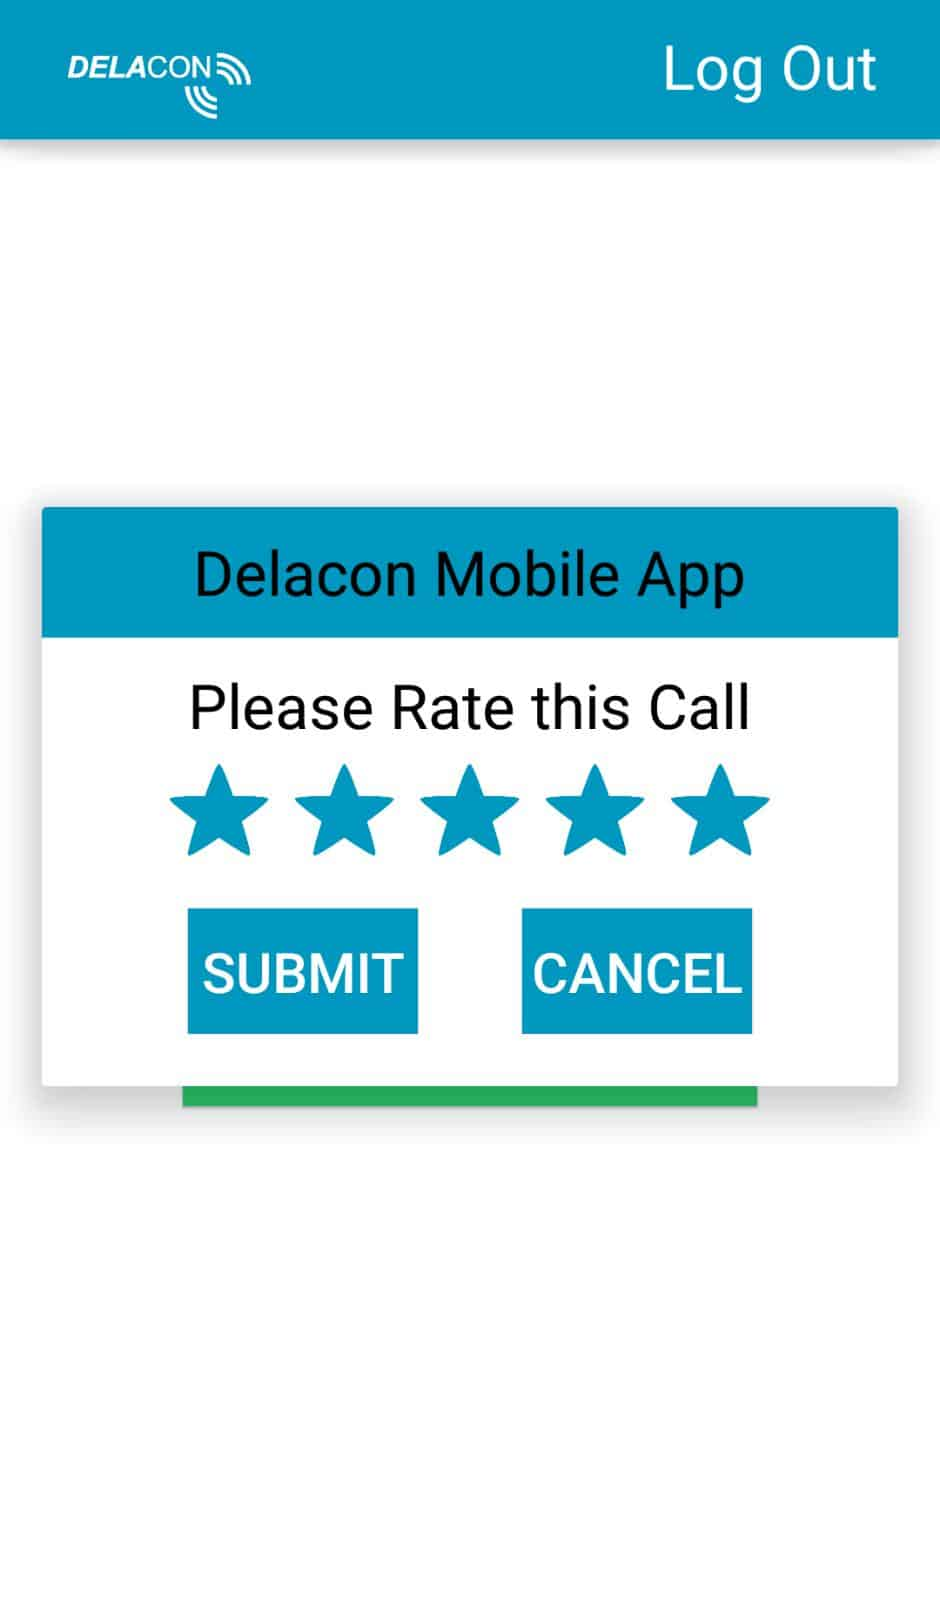 Delacon Android App – Call Rating Screen